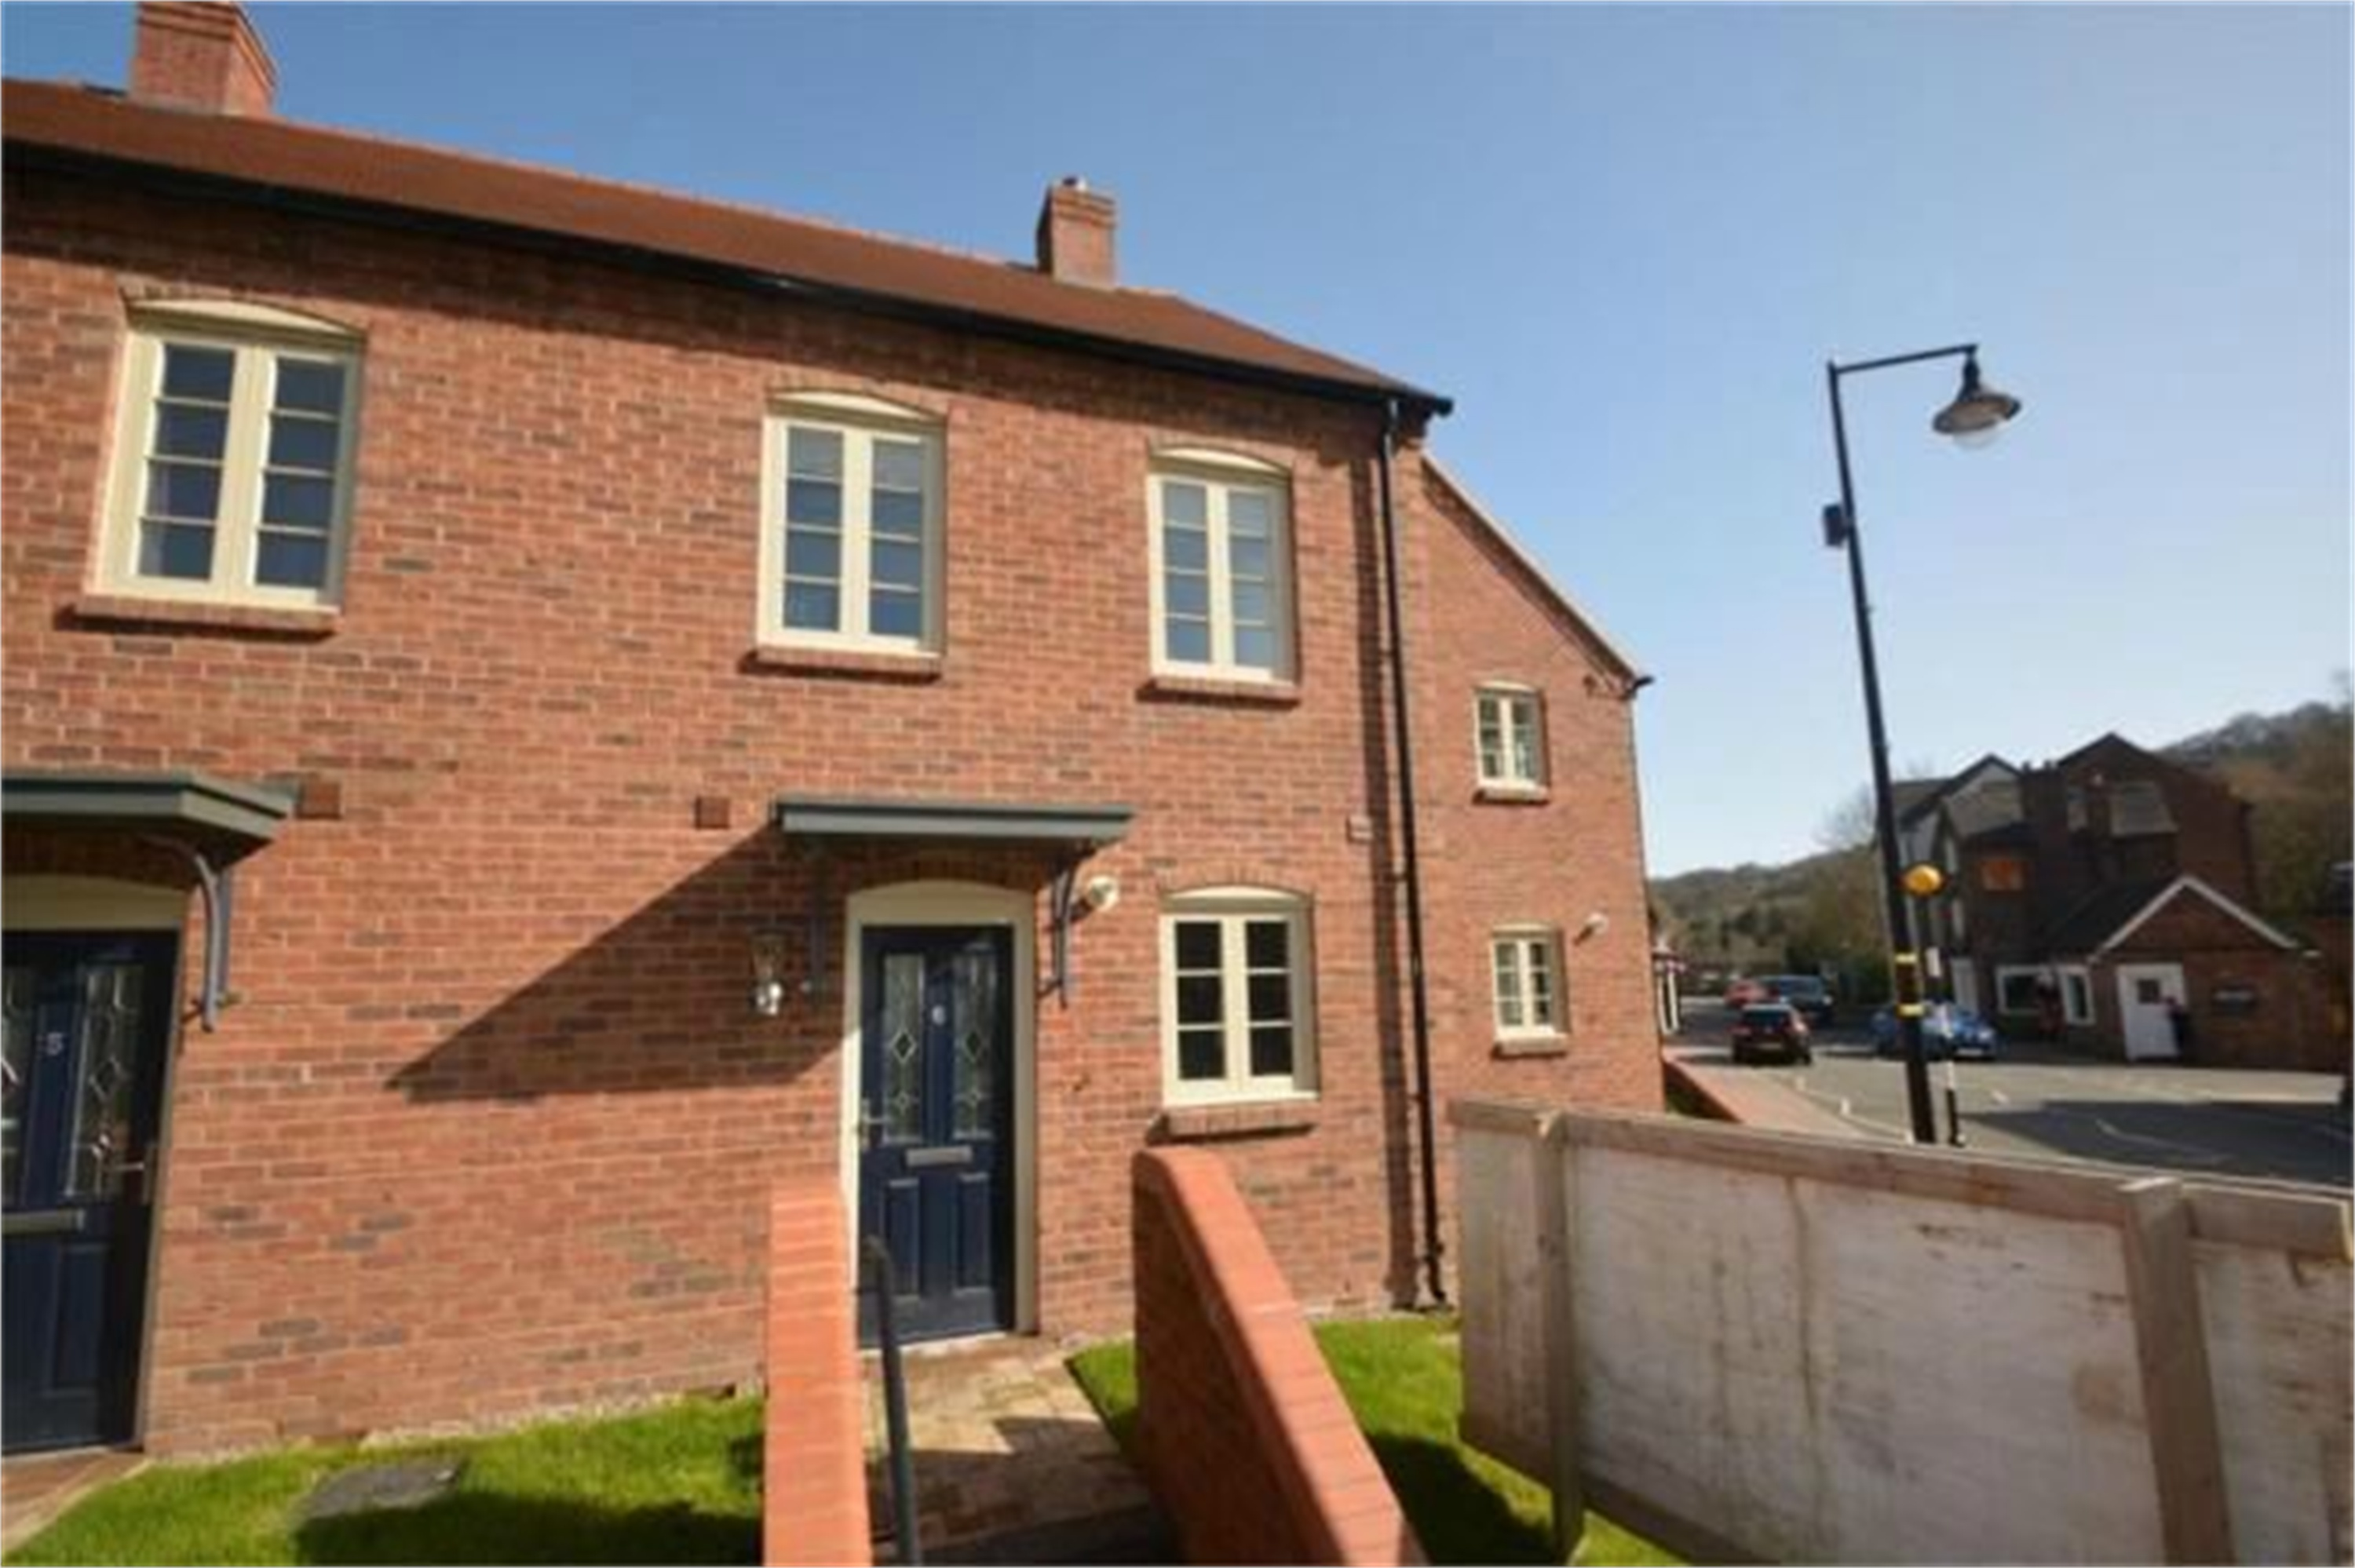 3 Bedrooms Terraced House for sale in 6 Foundry Mews, Dale End, Coalbrookdale, Telford, TF8